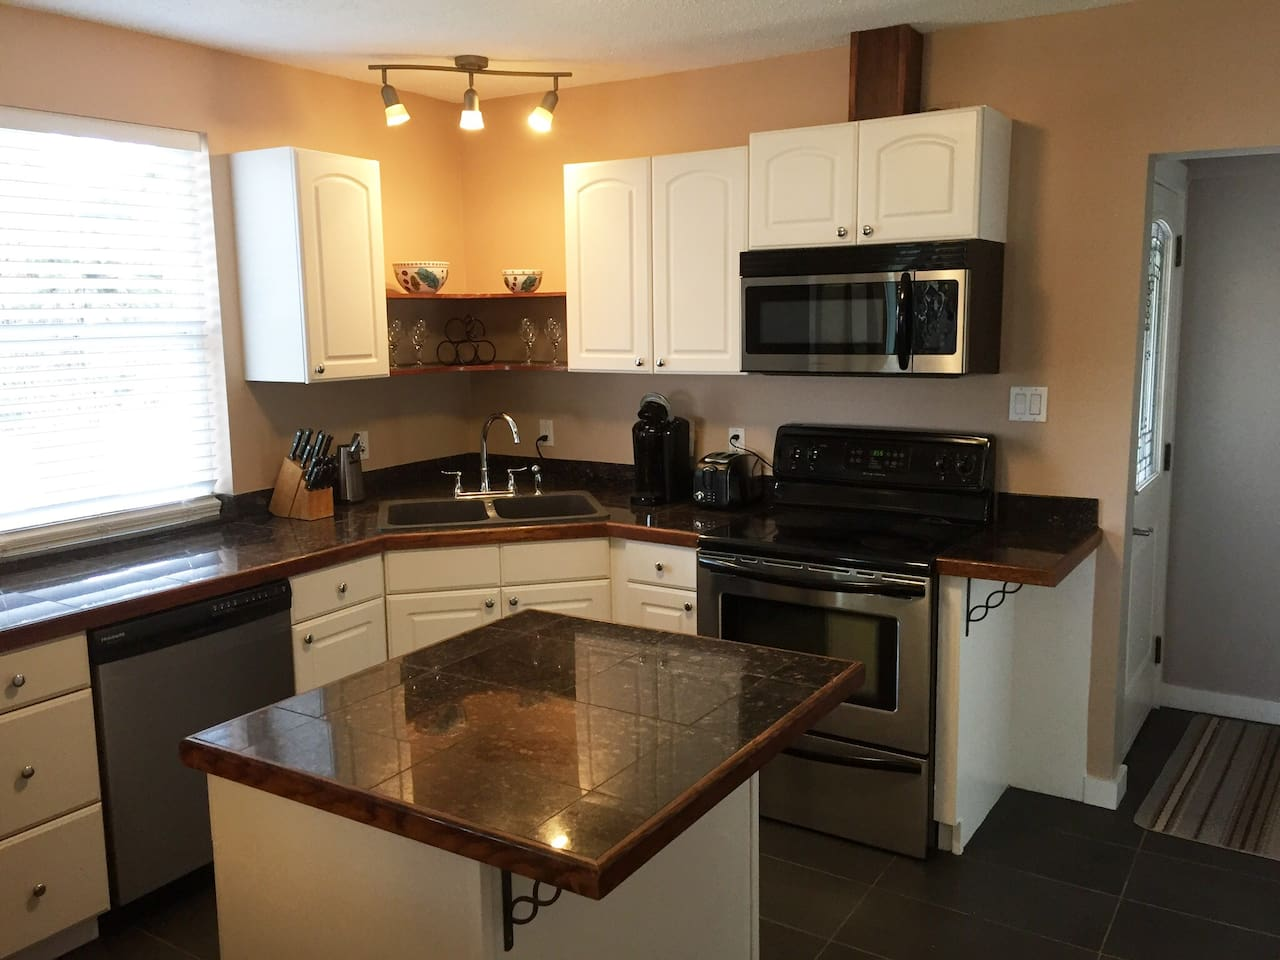 Kitchen with full amenities including keurig coffee maker, dishwasher, full sized stove, fridge, microwave oven, dishware and cookware.